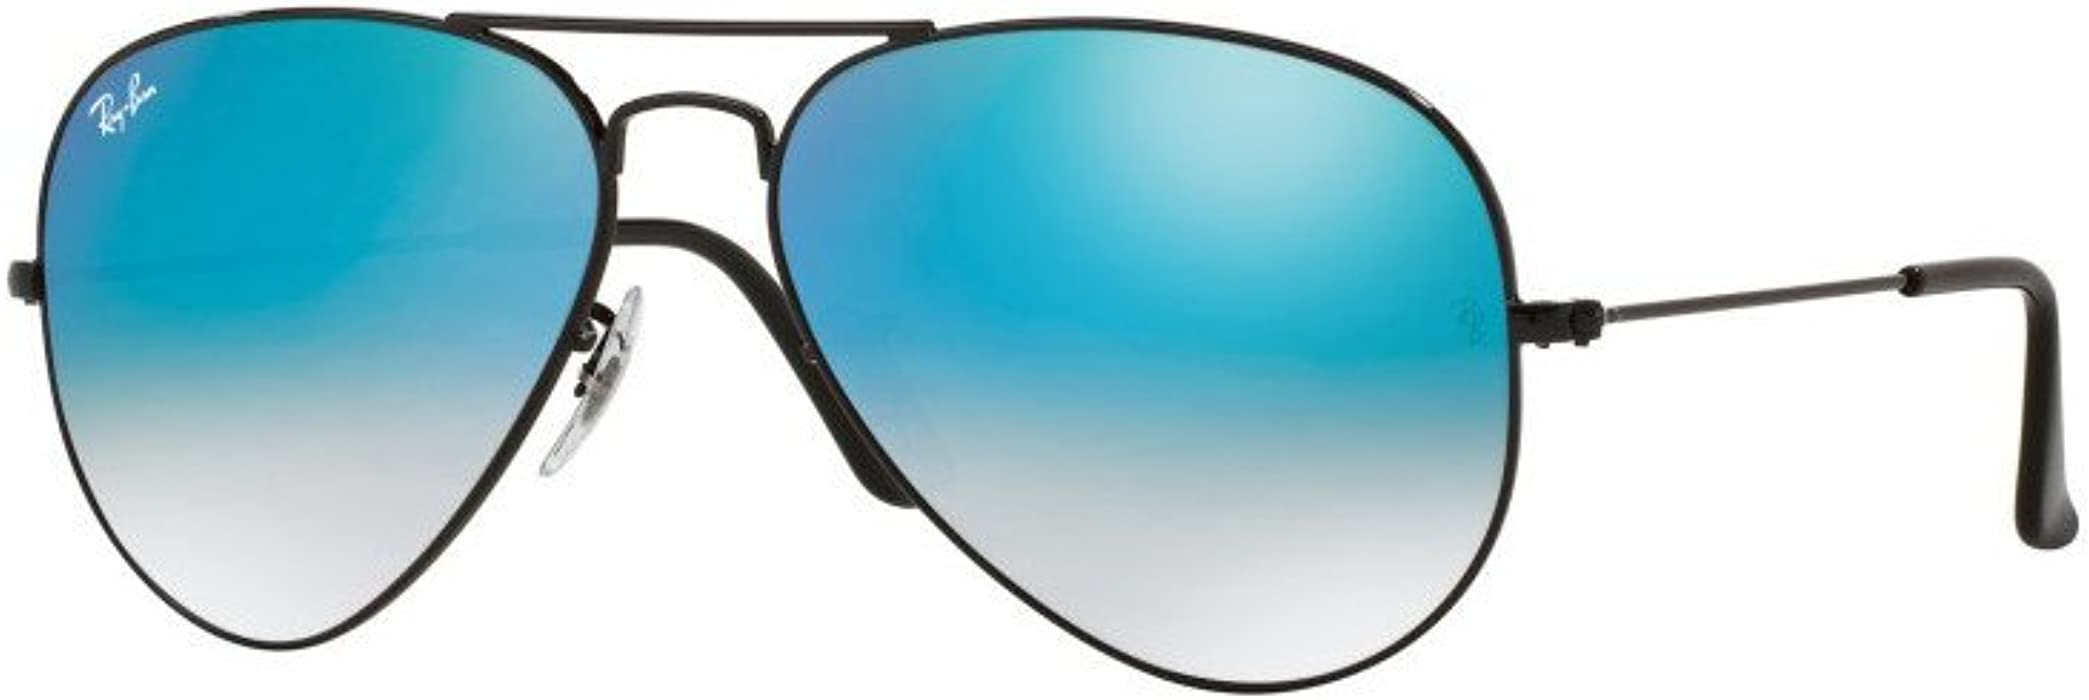 Amazon.com  Ray Ban RB3025 002 4O 58 Shiny Black Blue Mirror Aviator ... 9e8f02ca22